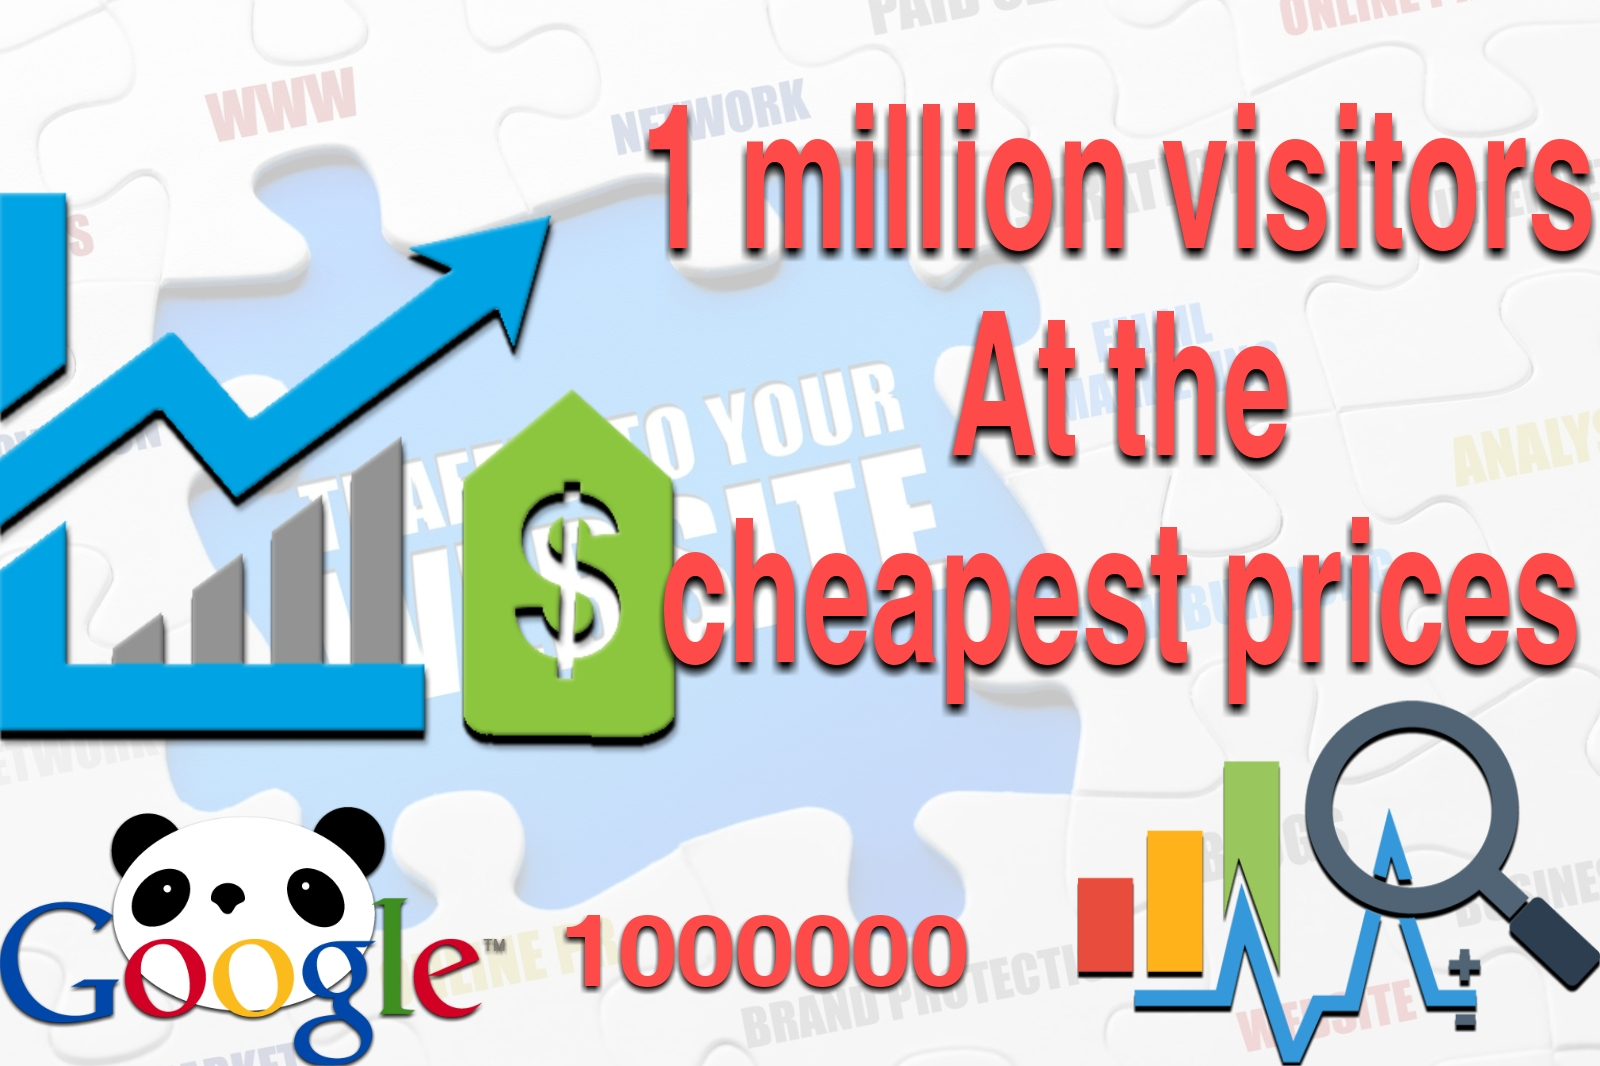 Get 1000000 1 million visitors/Traffic to your site at the lowest prices